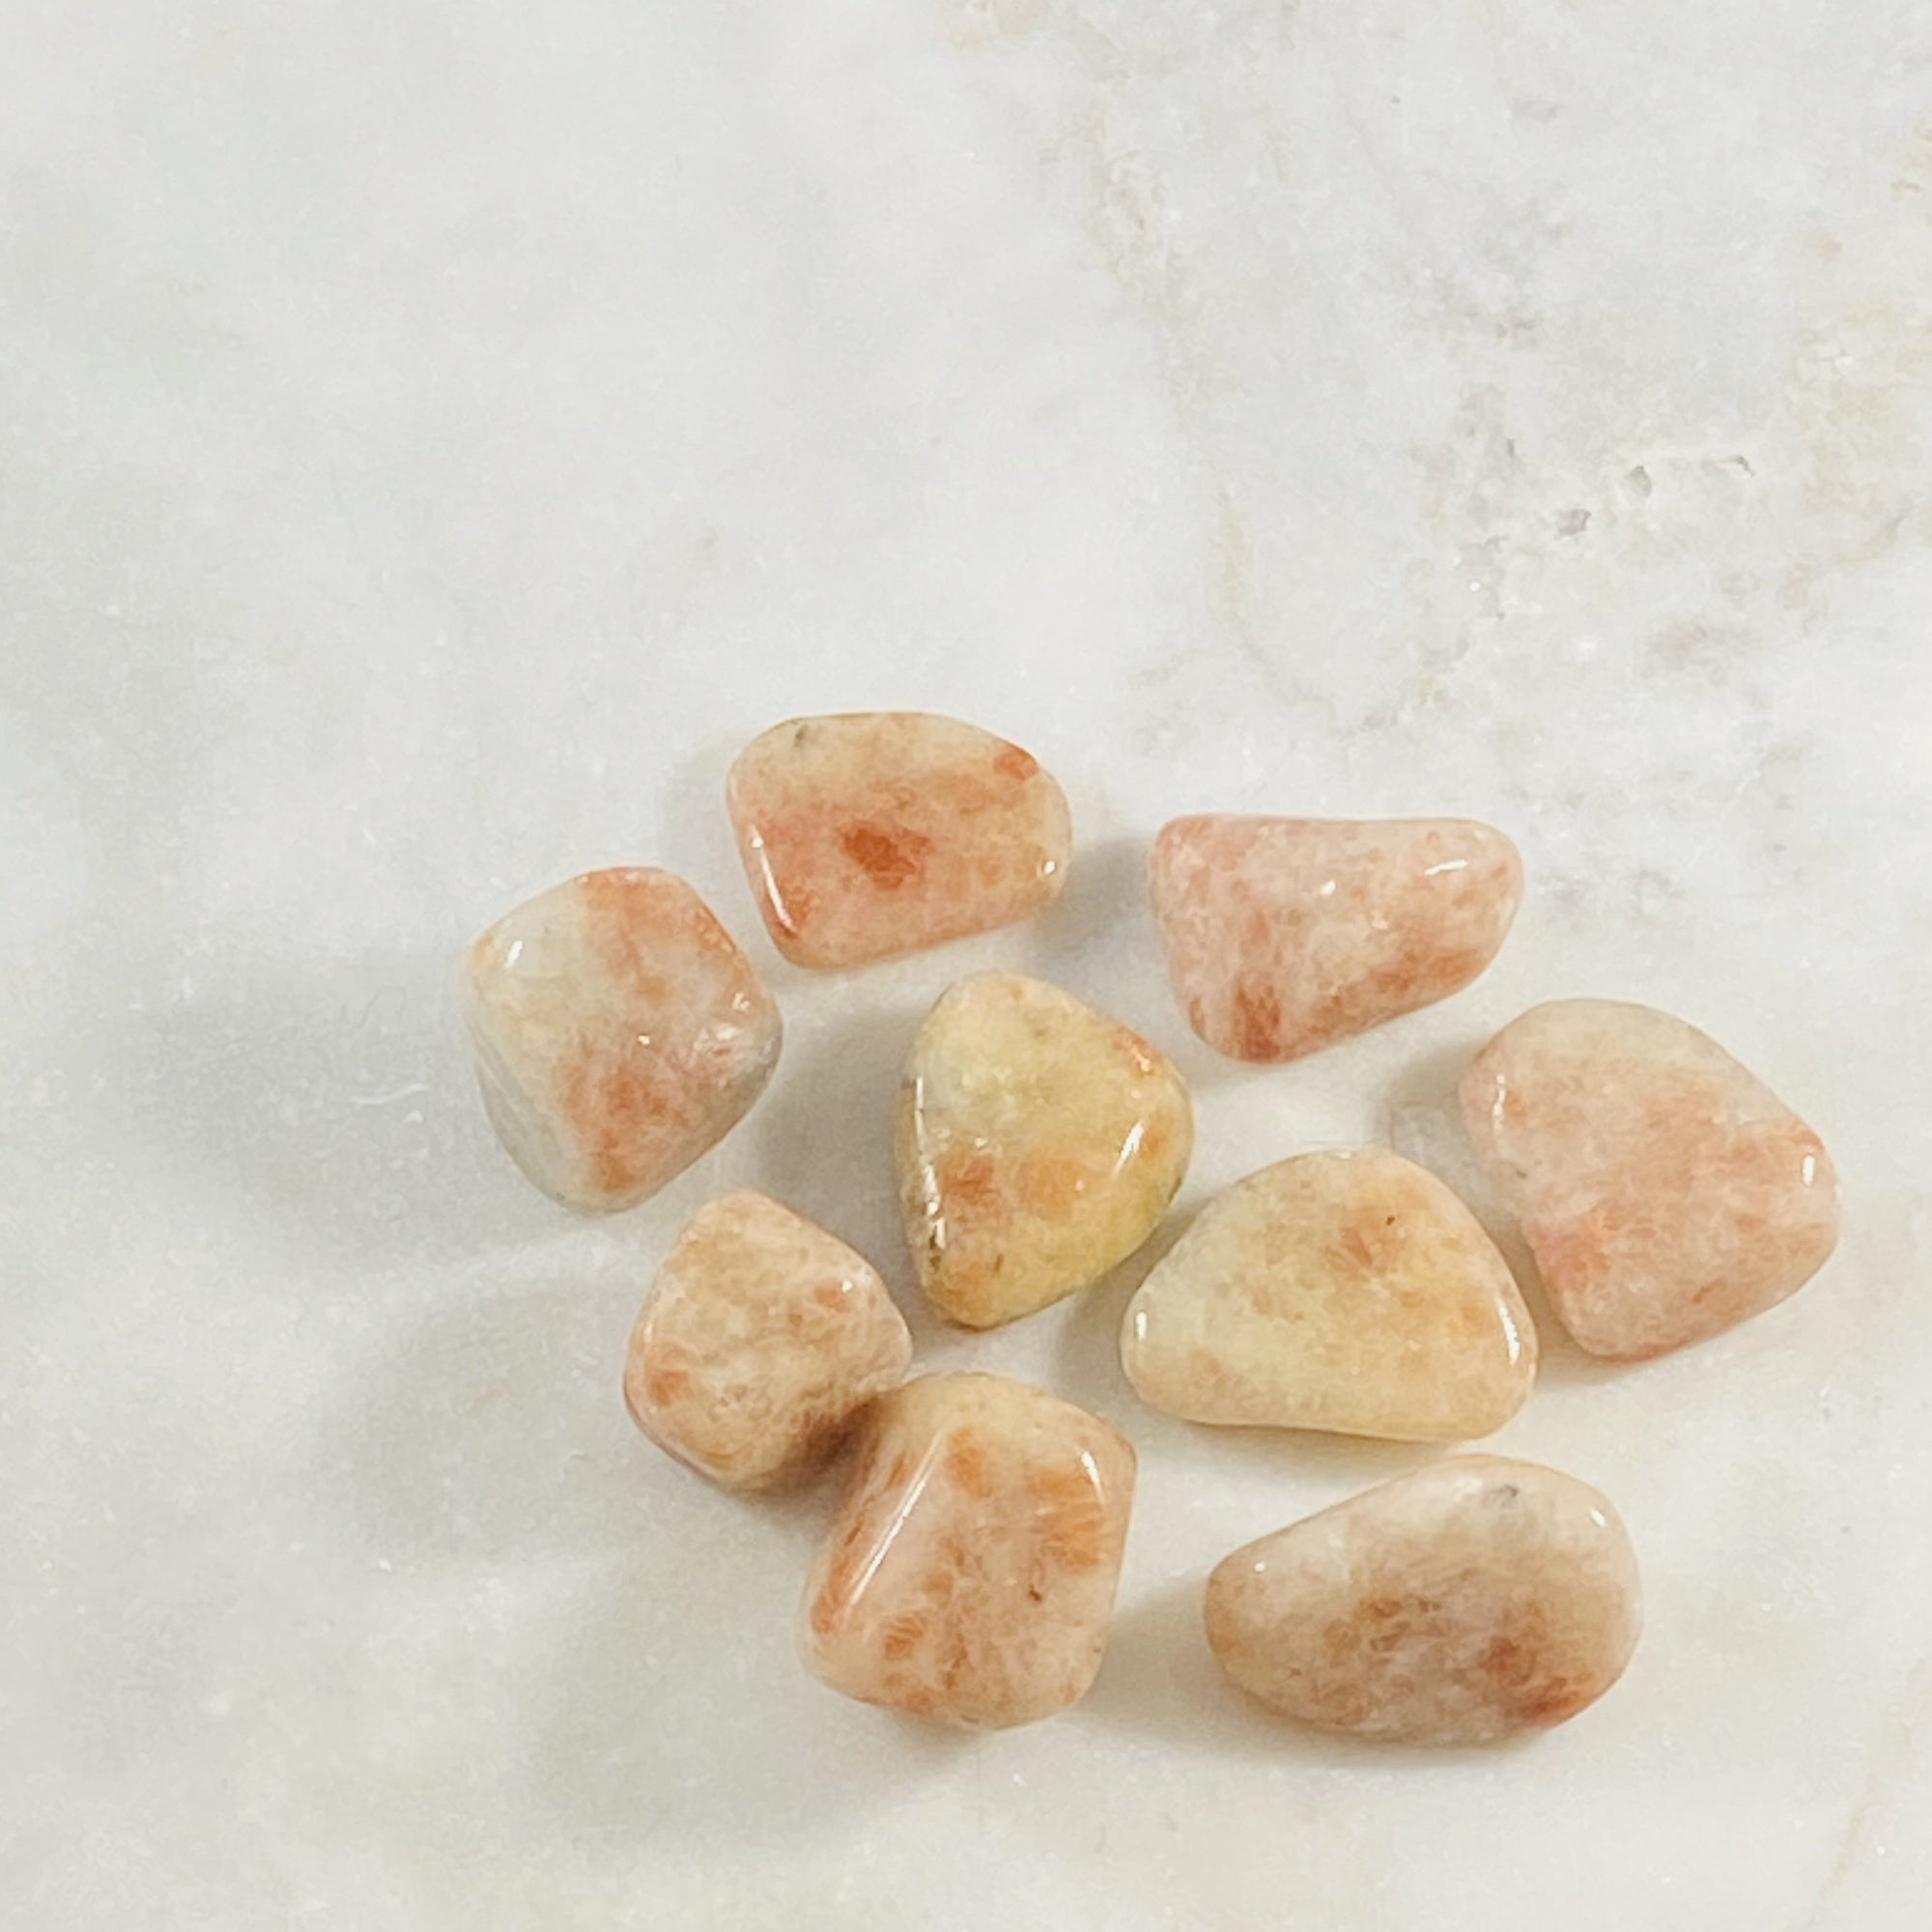 Sunstone Tumbled Stone Healing crystal energy for joy and leadership